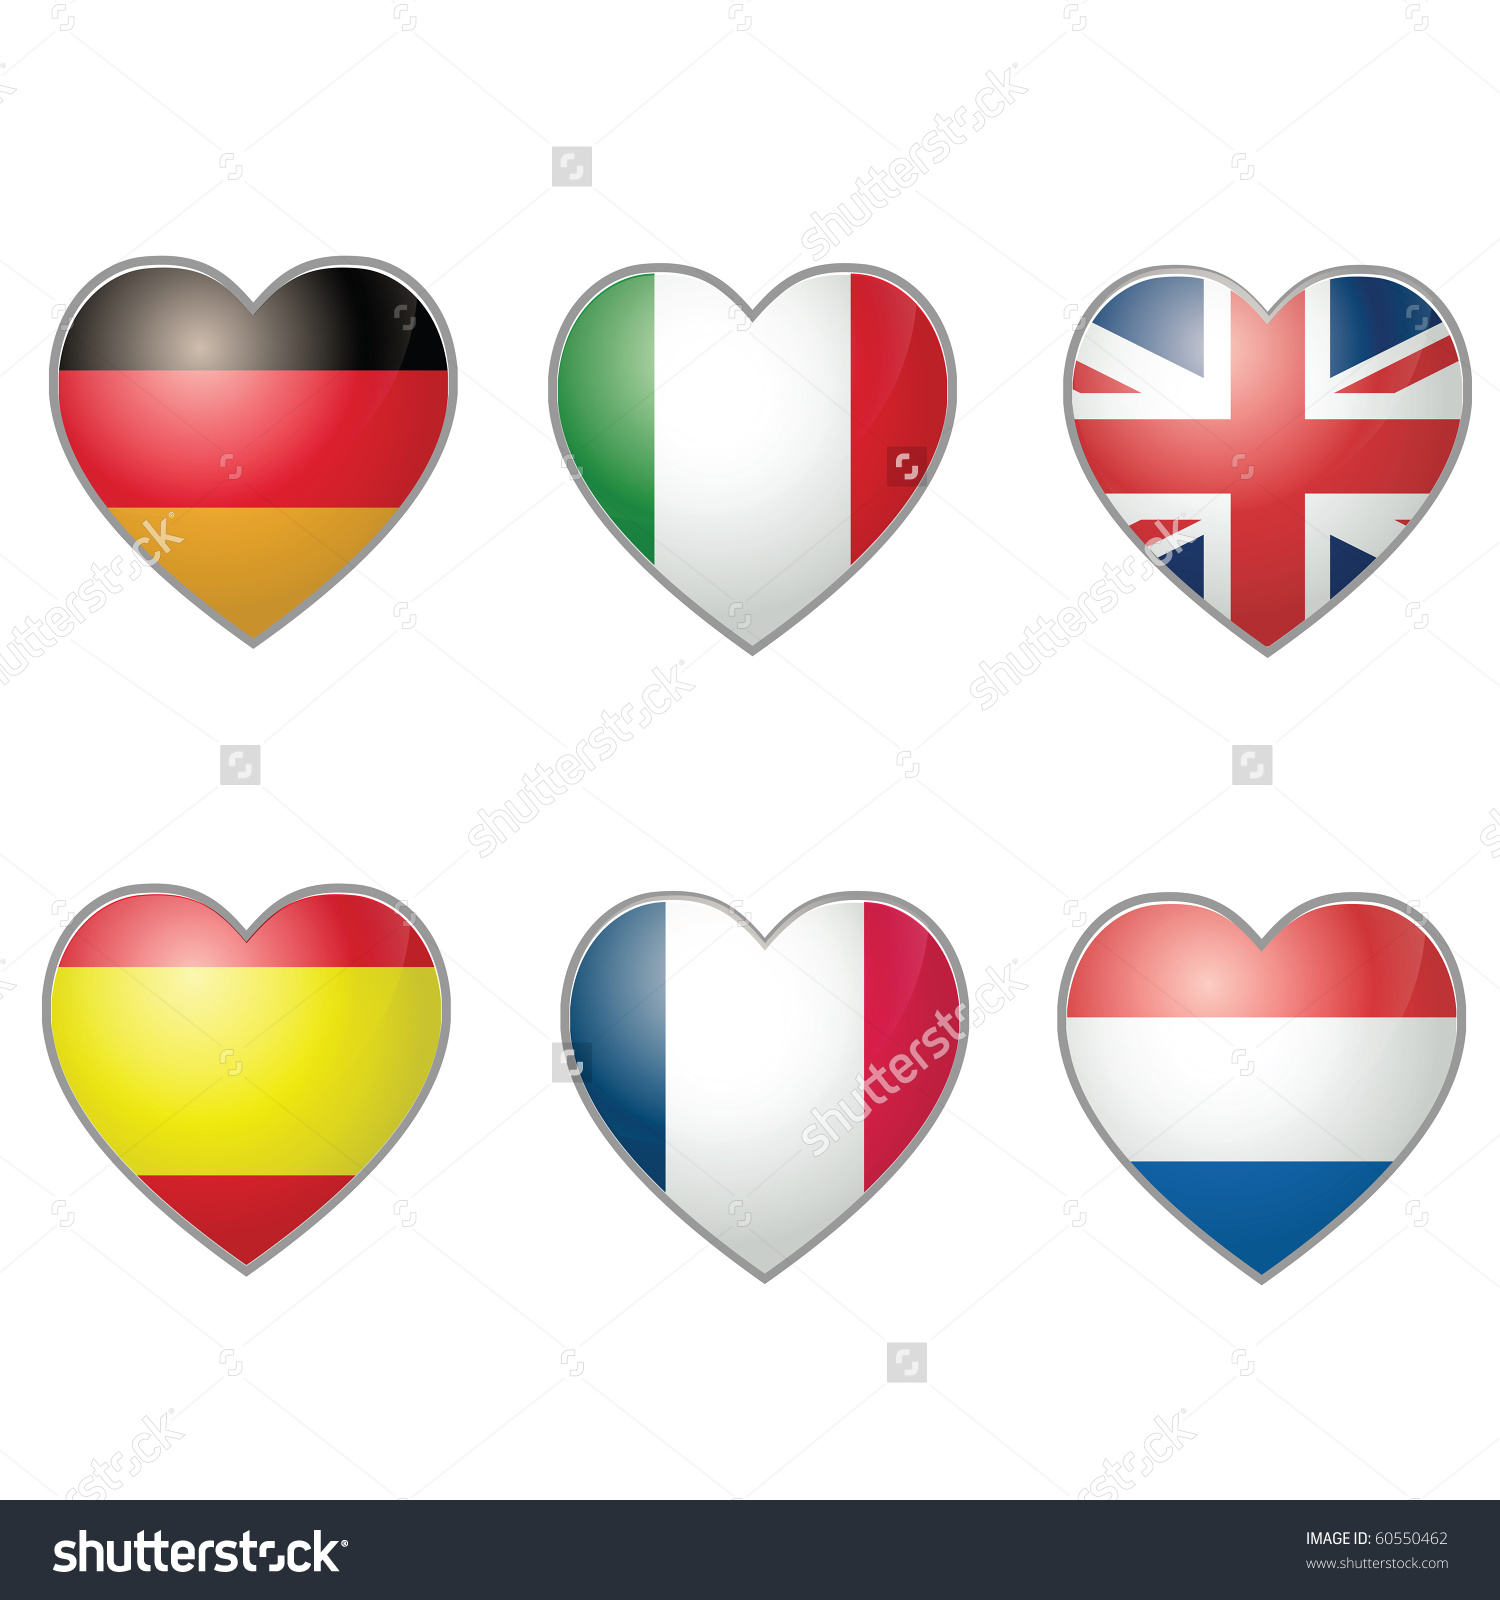 Spain and Italy Clip Art.